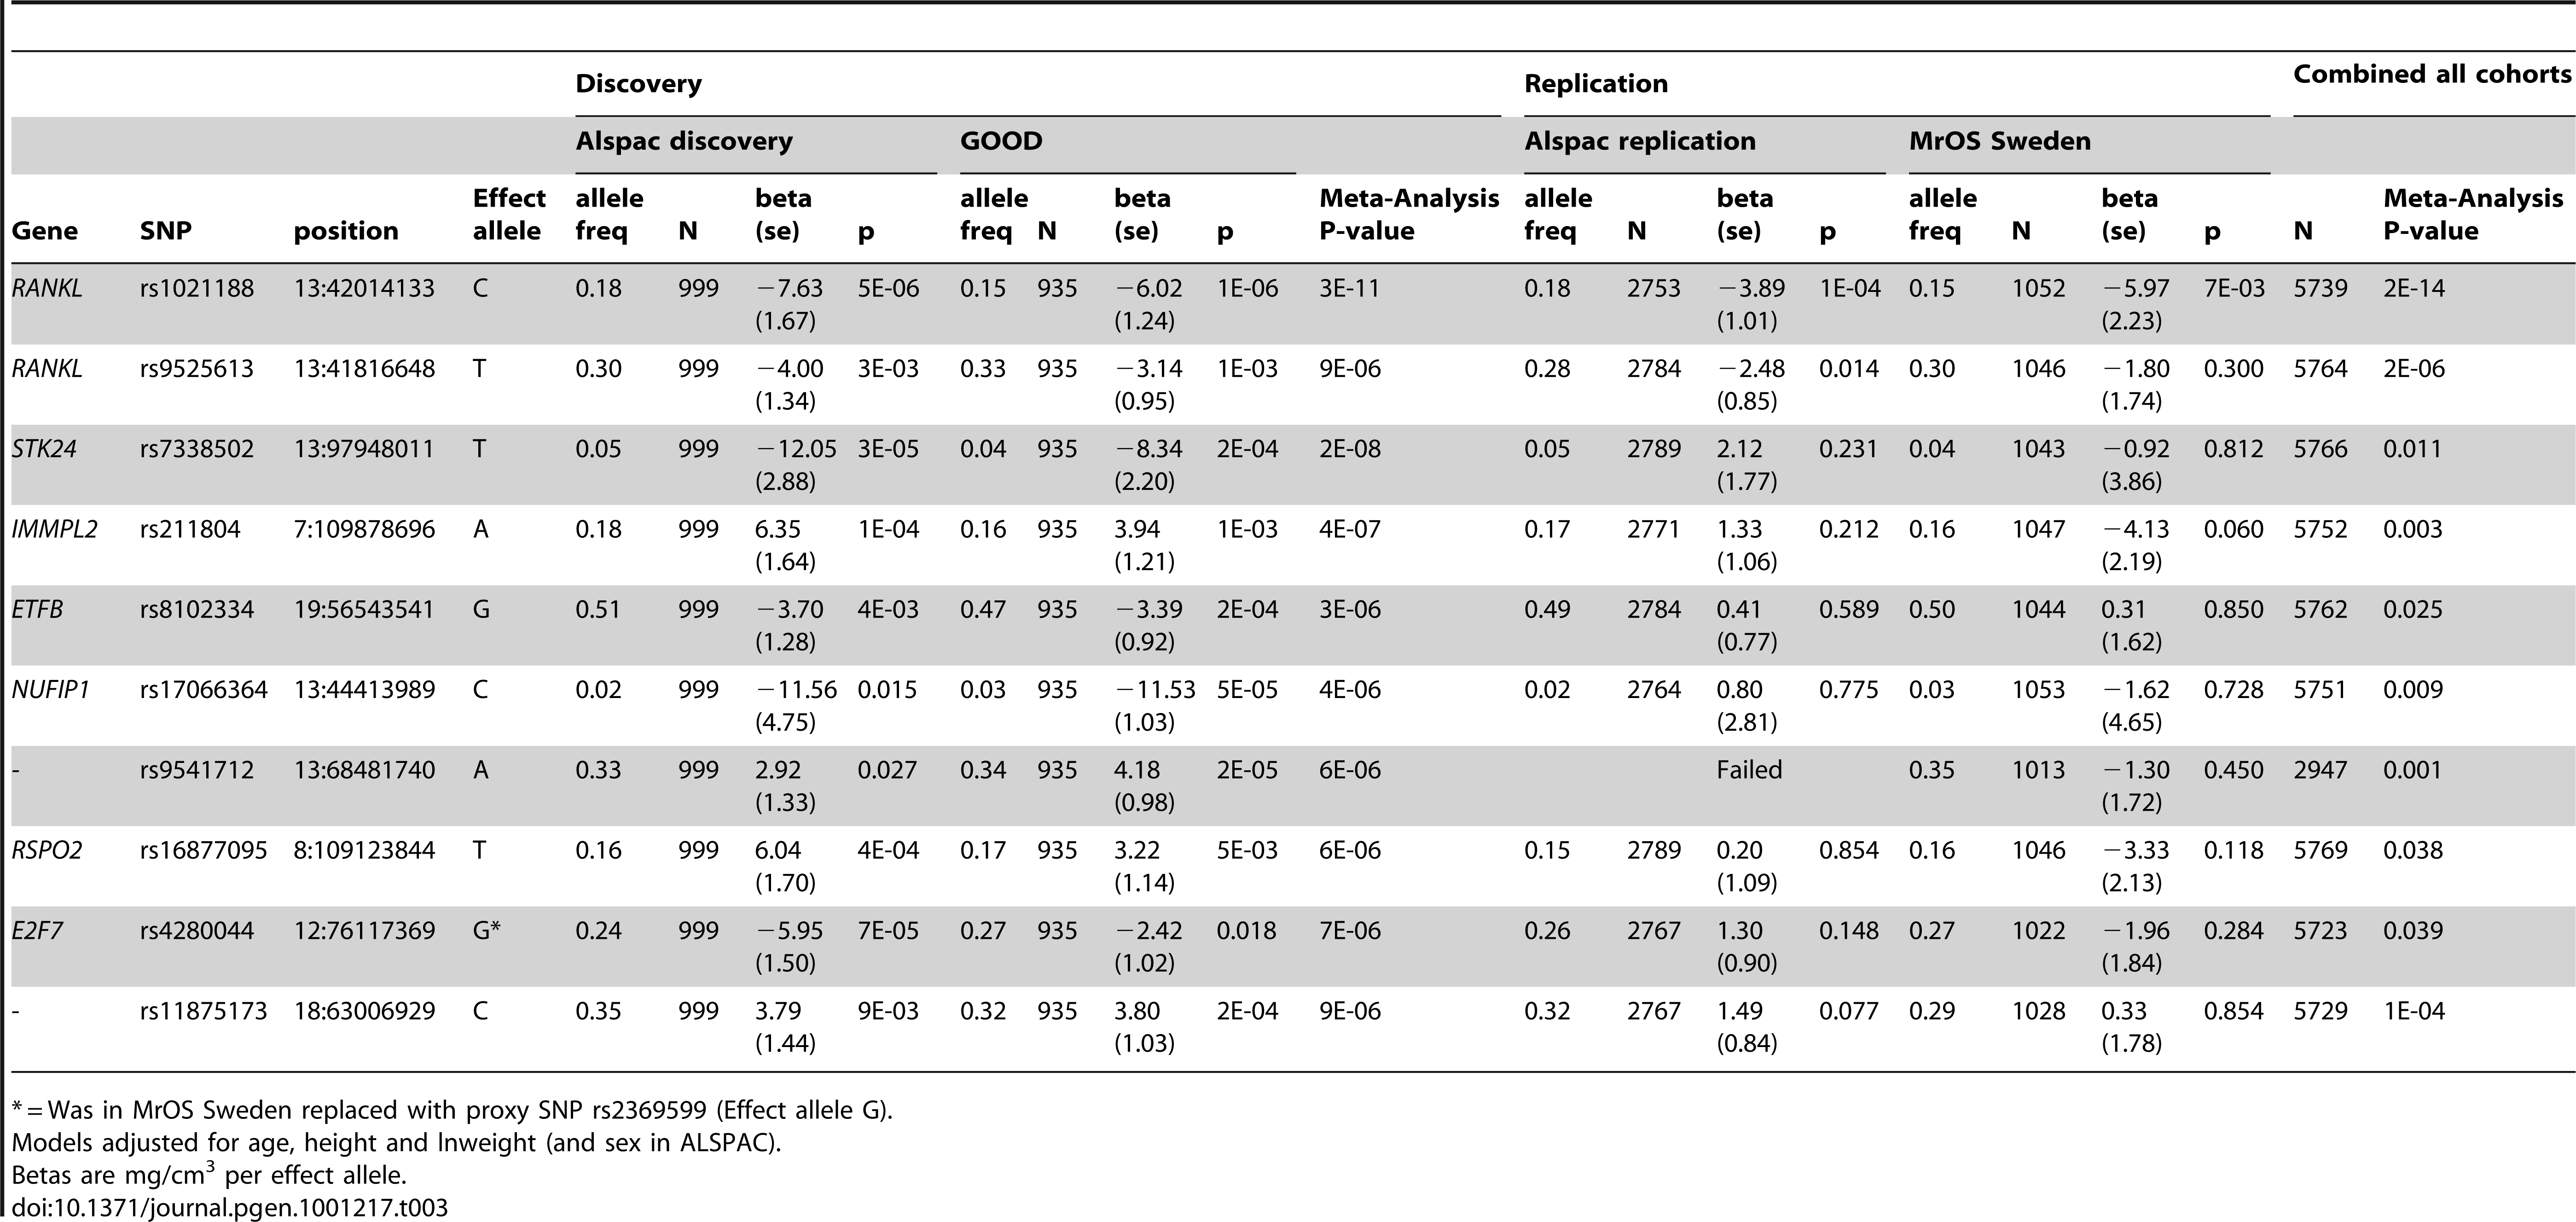 Top cortical BMD GWAS meta-analysis hits, with replication and meta-analysis results of all four cohorts.